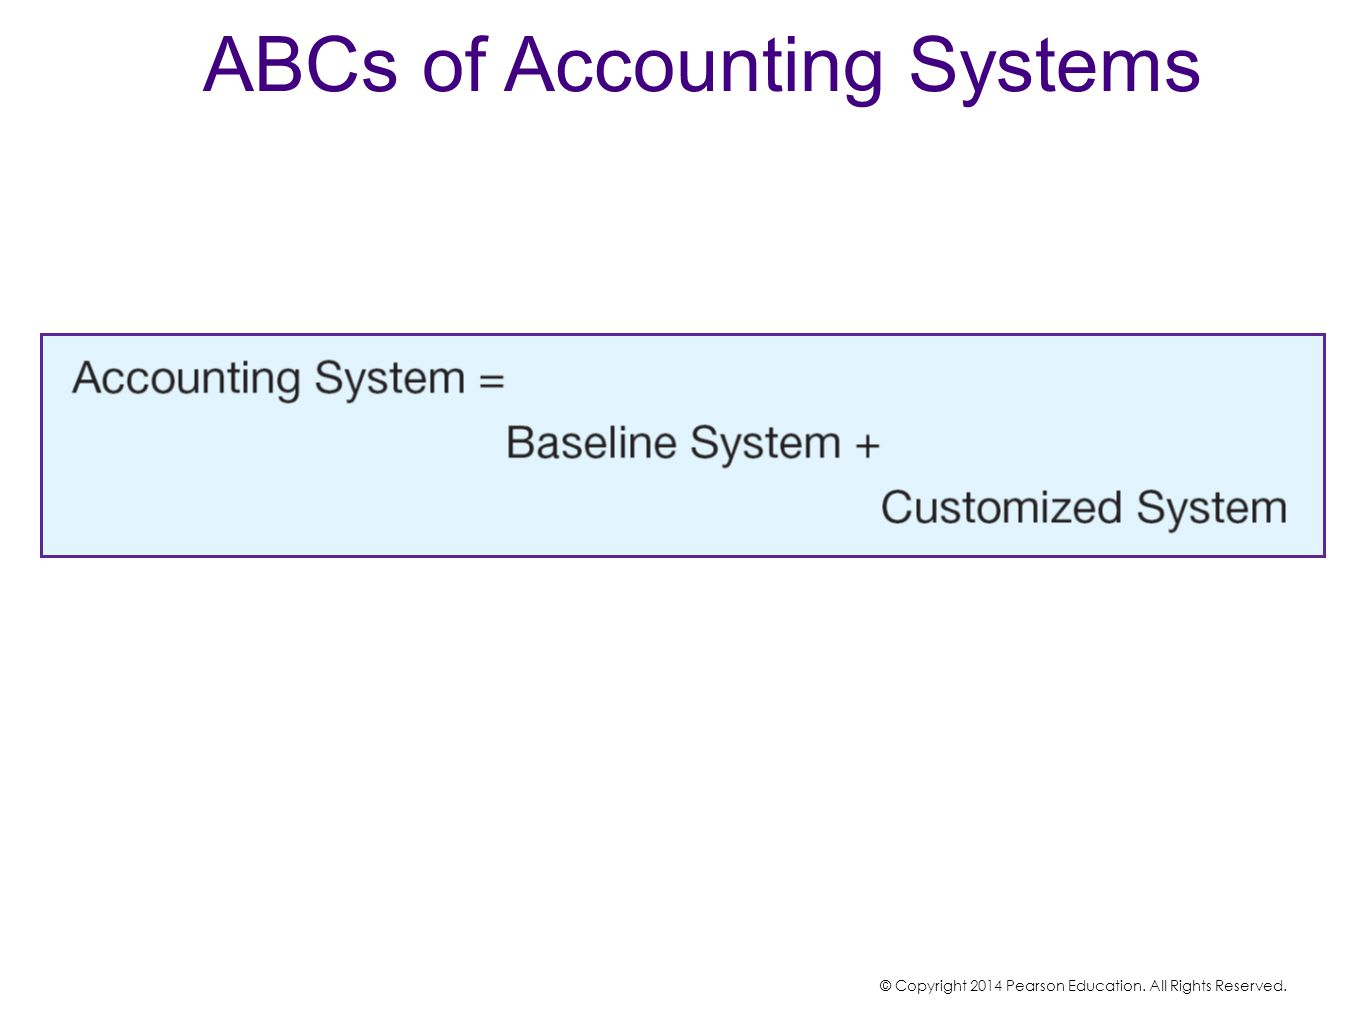 ABCs of Accounting Systems